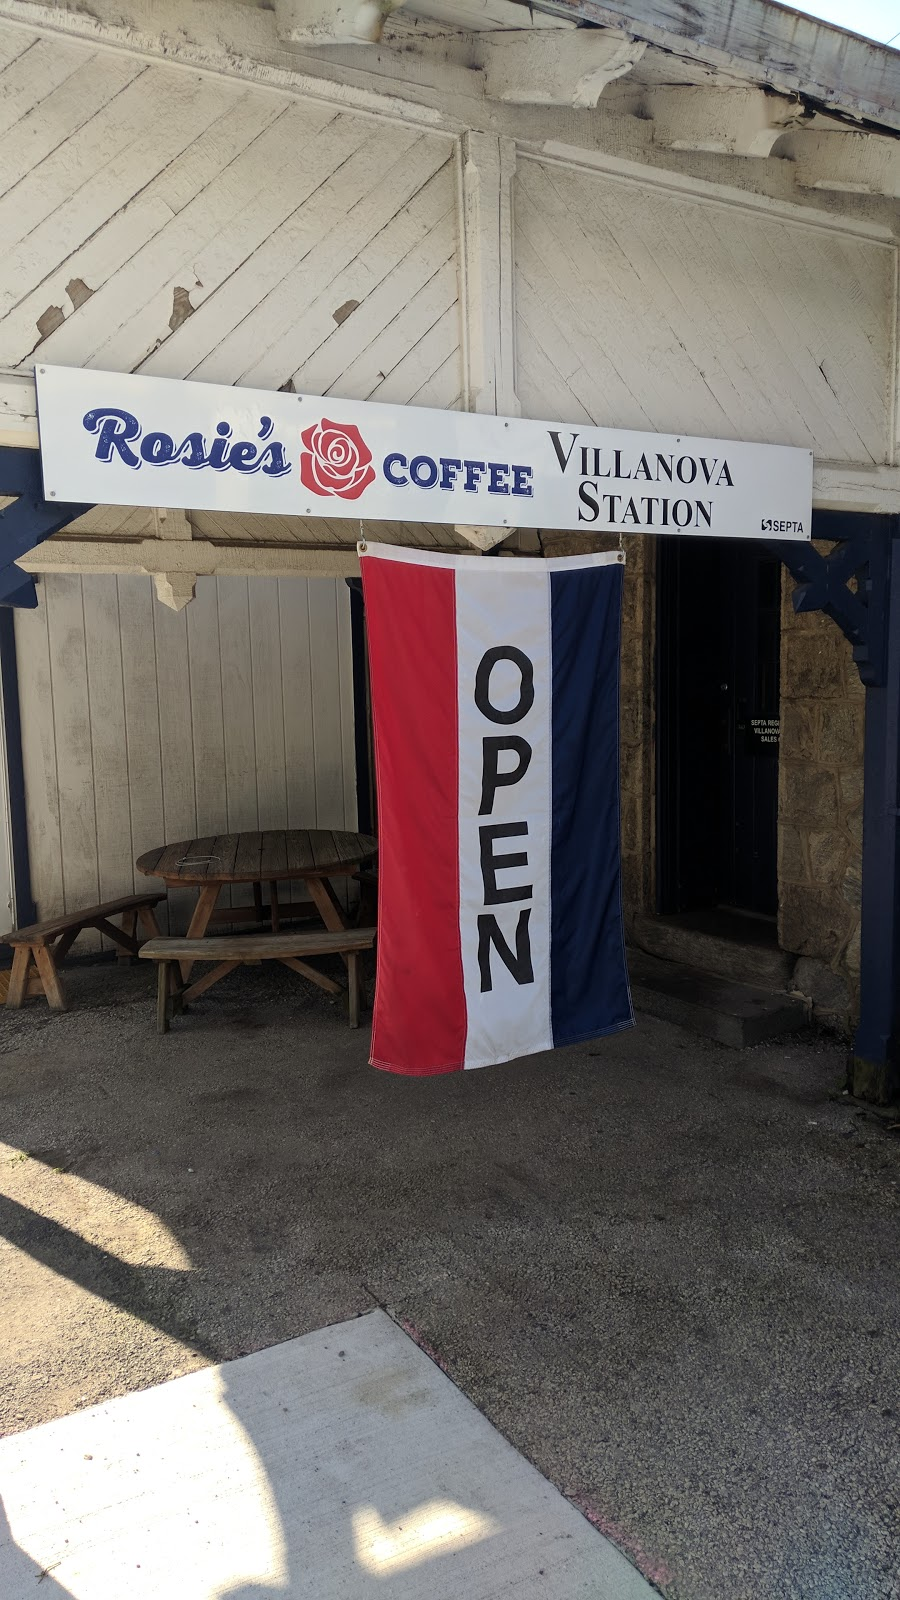 Rosies Coffee at Villanova Station - cafe  | Photo 7 of 10 | Address: Train Station, 308 N Spring Mill Rd, Villanova, PA 19085, USA | Phone: (267) 253-1249